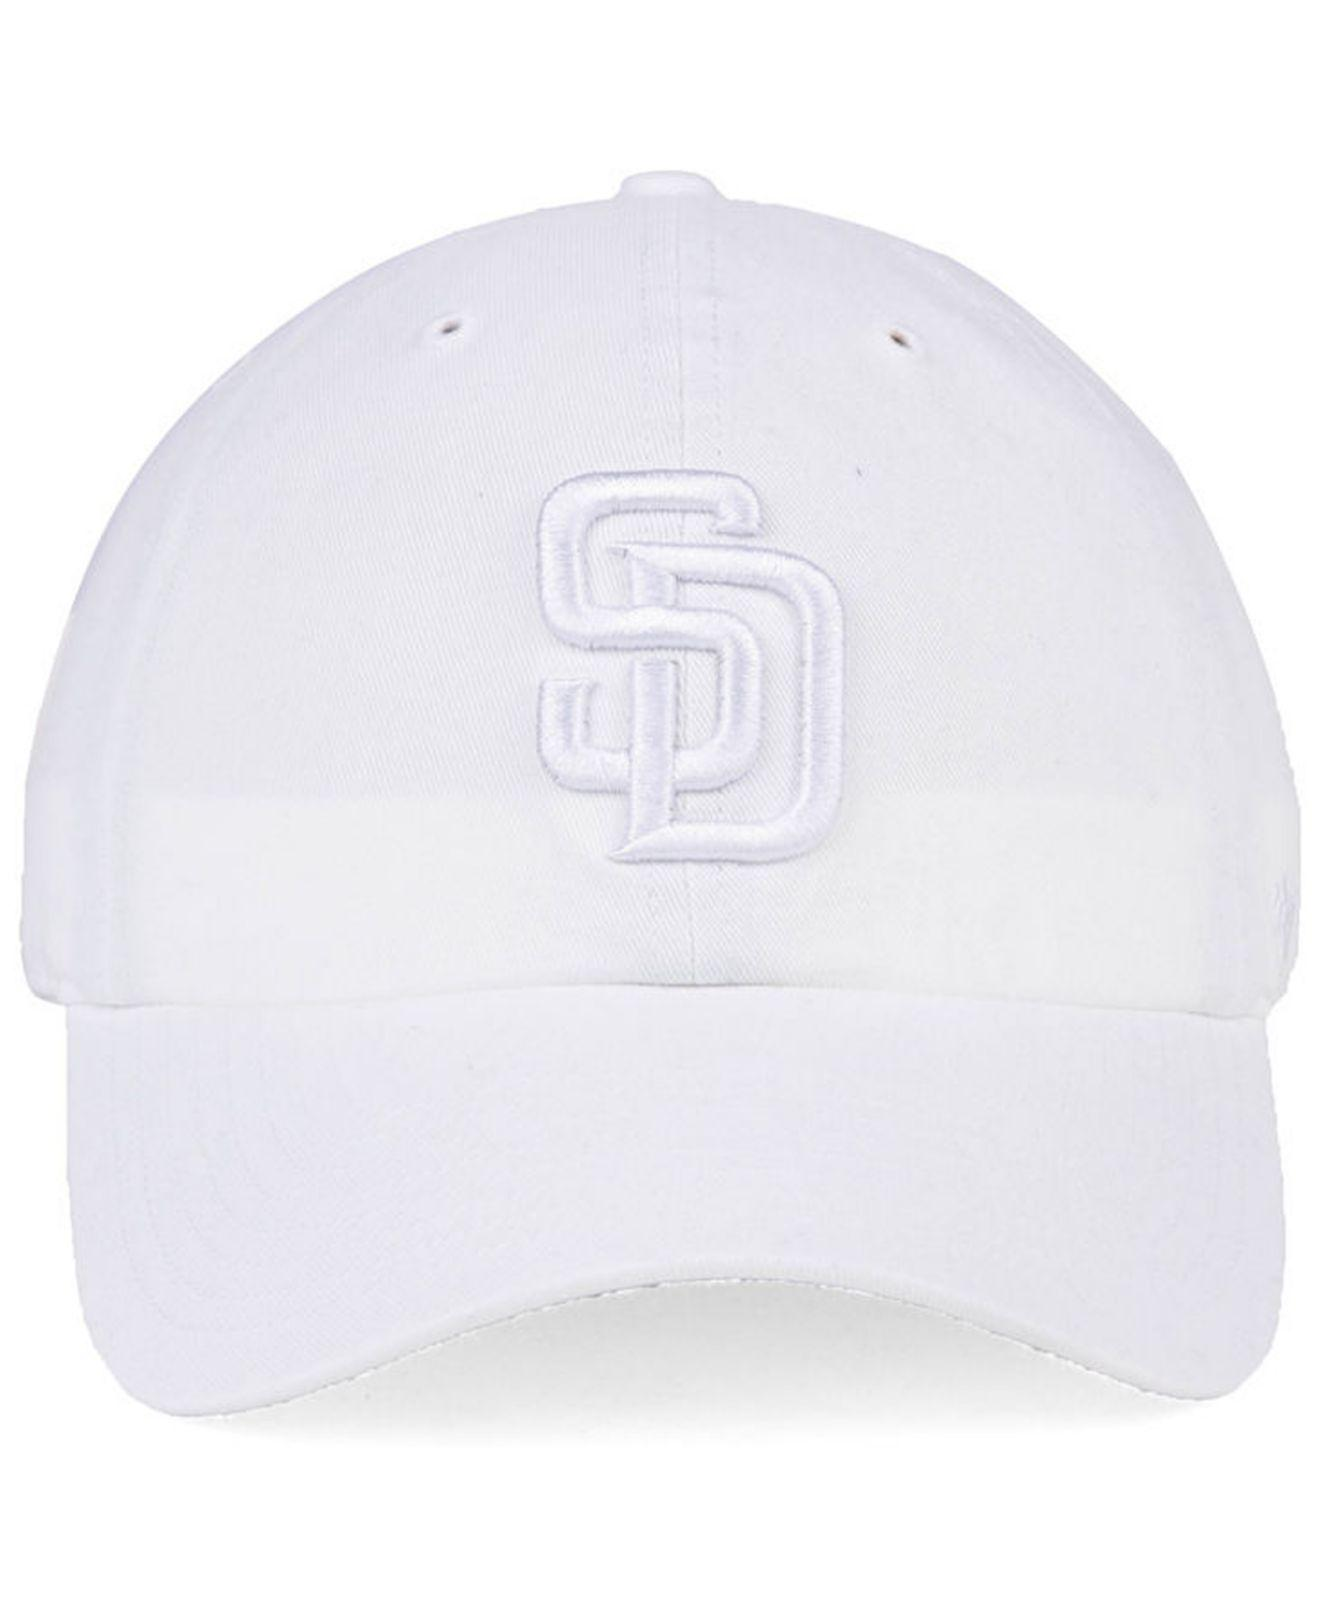 06936559c0a25 Lyst - 47 Brand San Diego Padres White white Clean Up Cap in White for Men